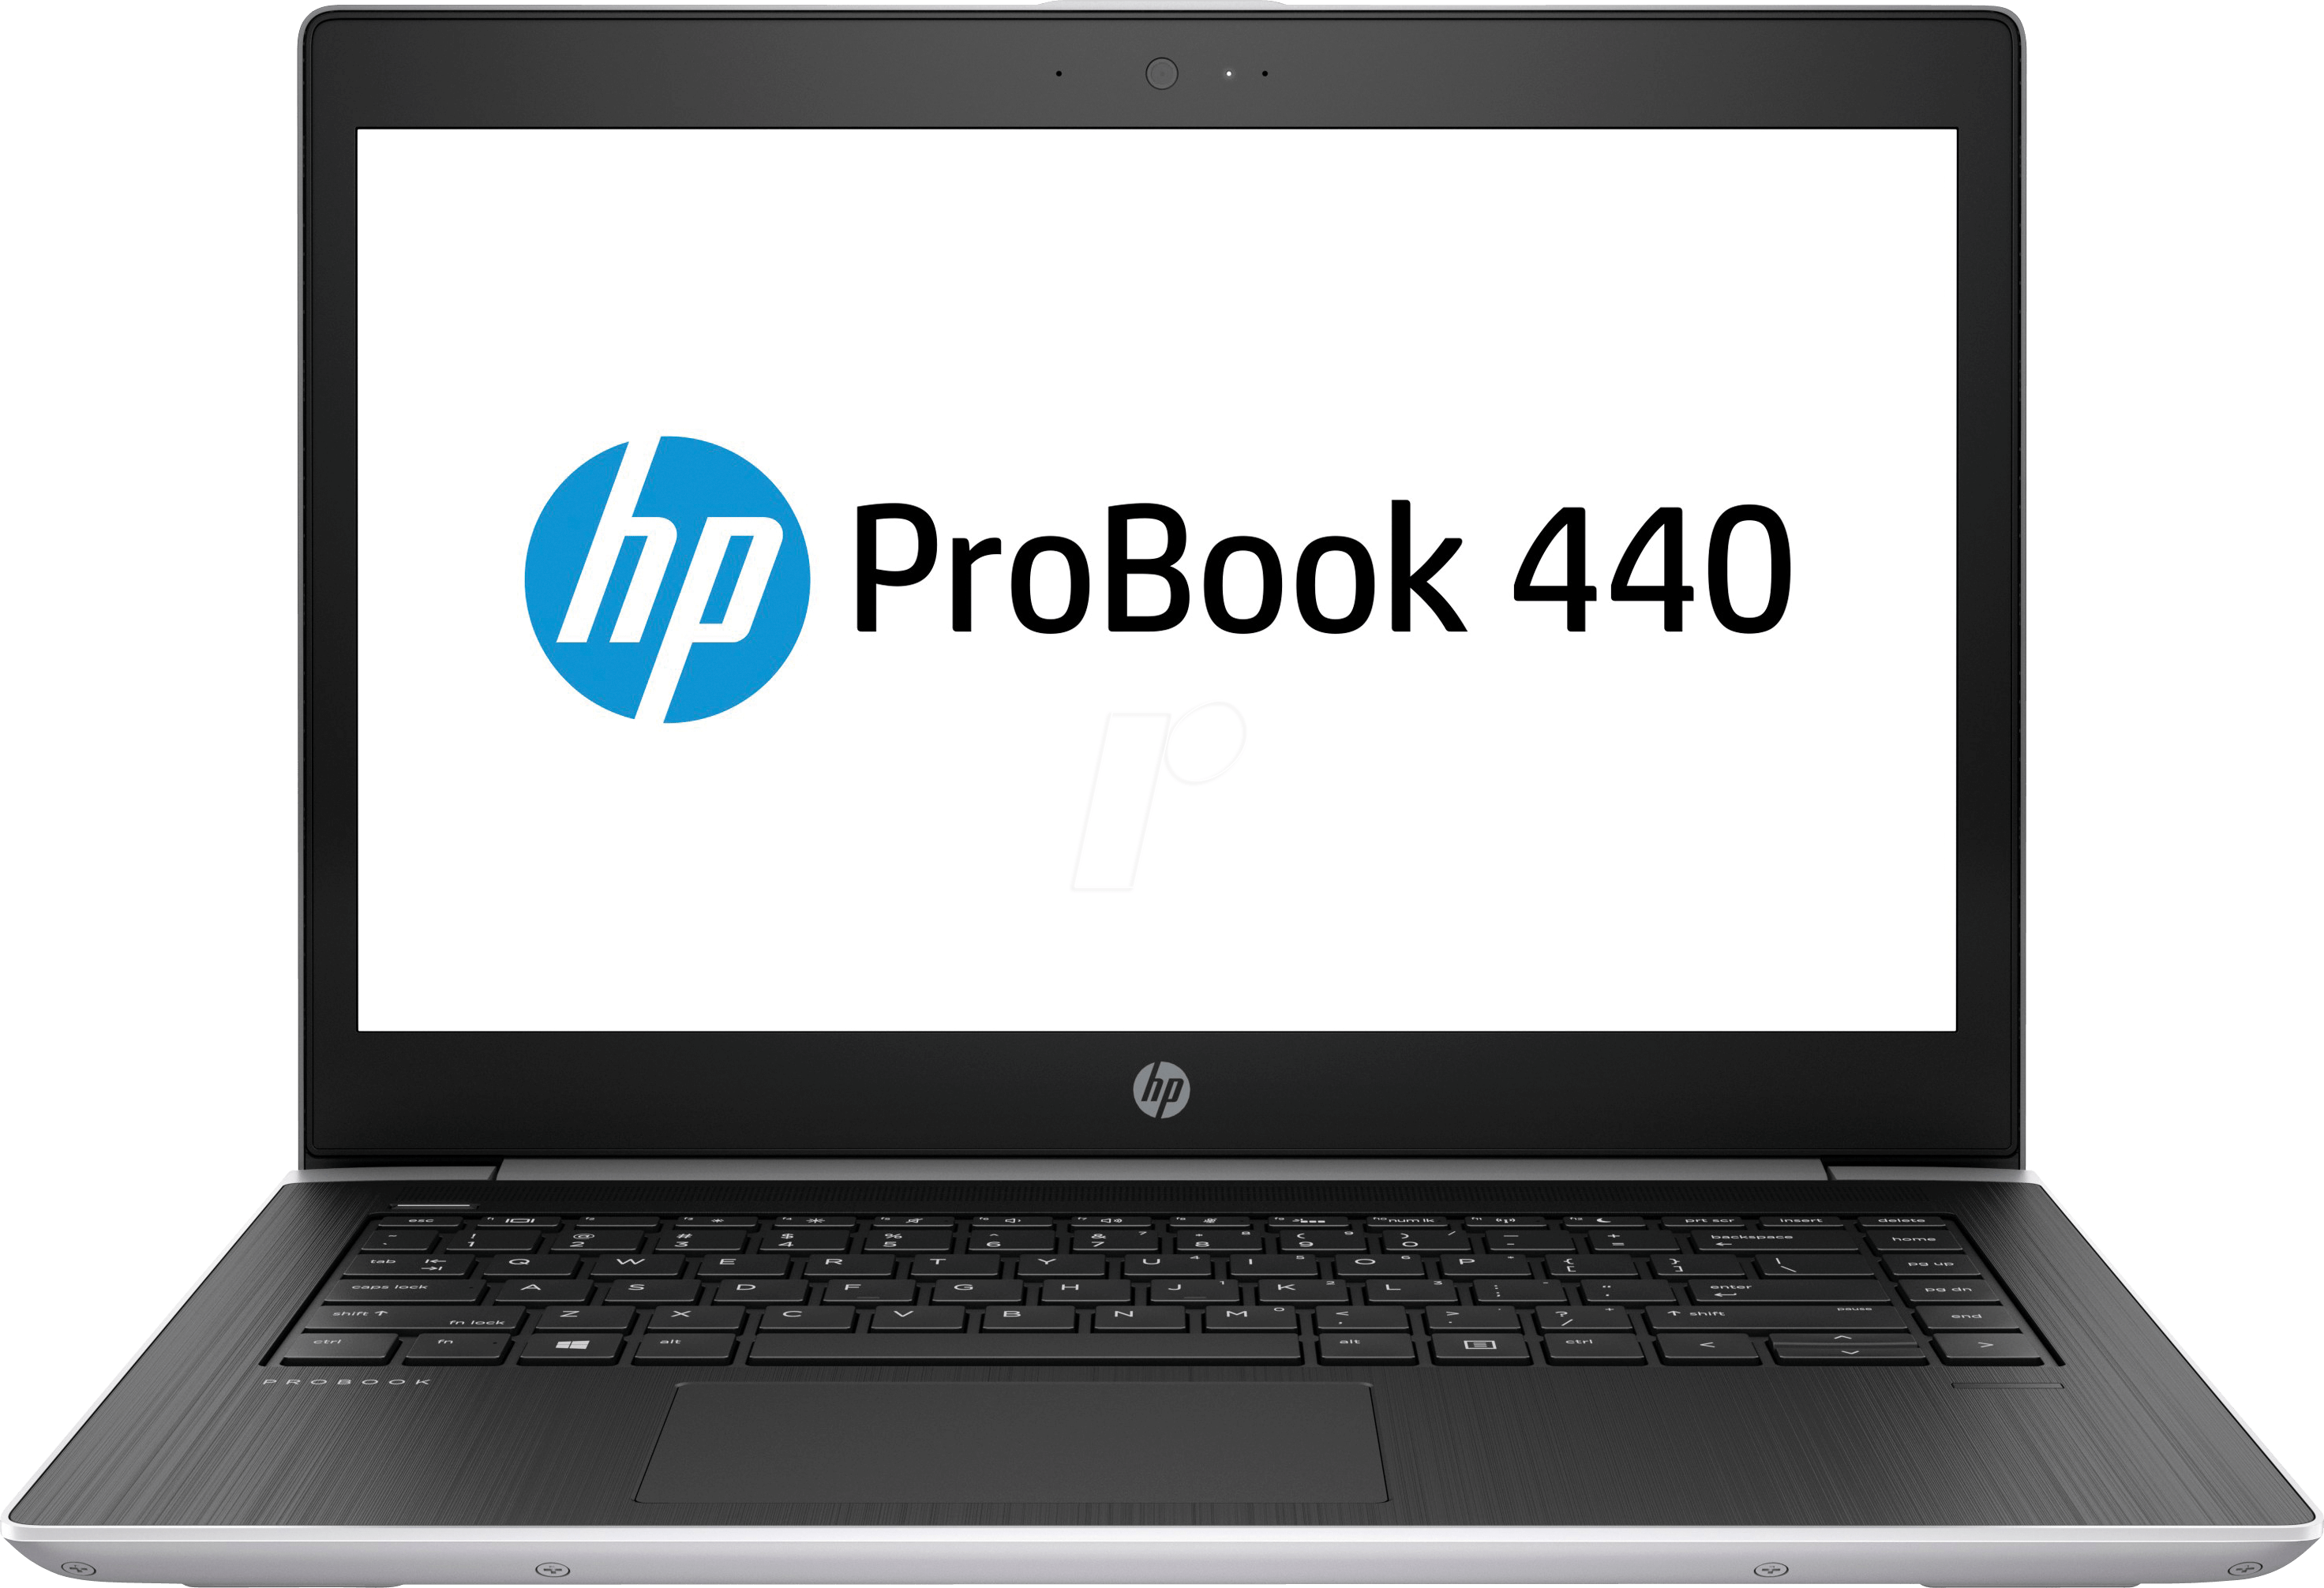 HP 4QW84EA - Laptop, ProBook 440G5, SSD, Window...